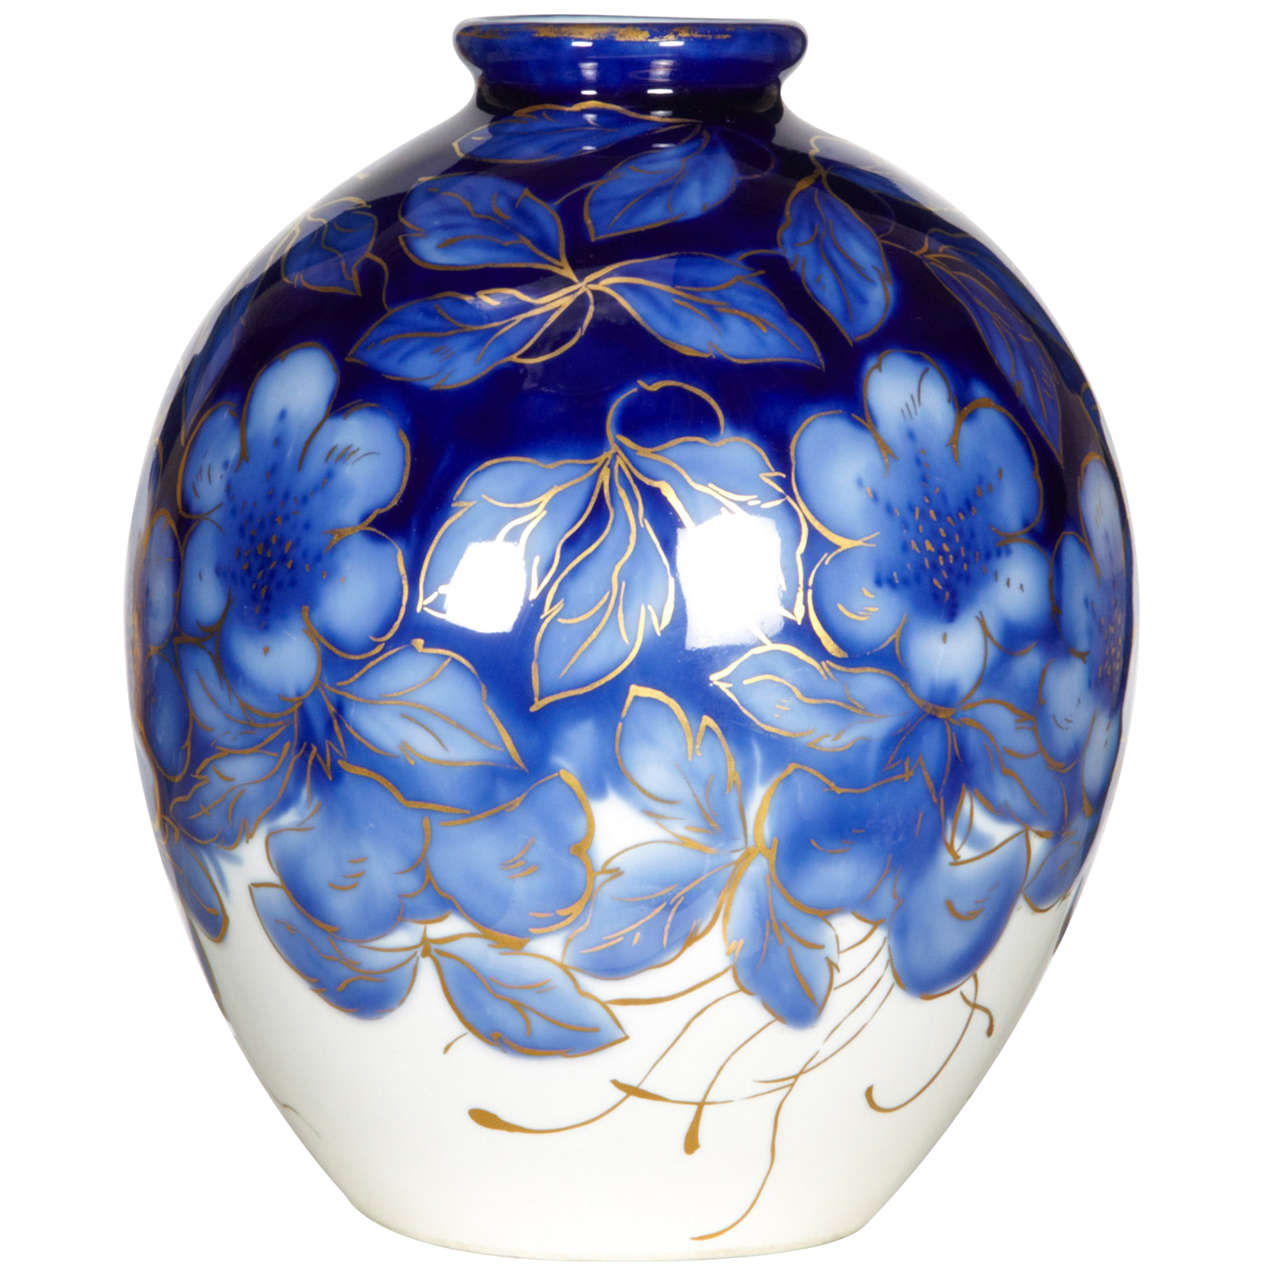 Vase by Camille Tharaud